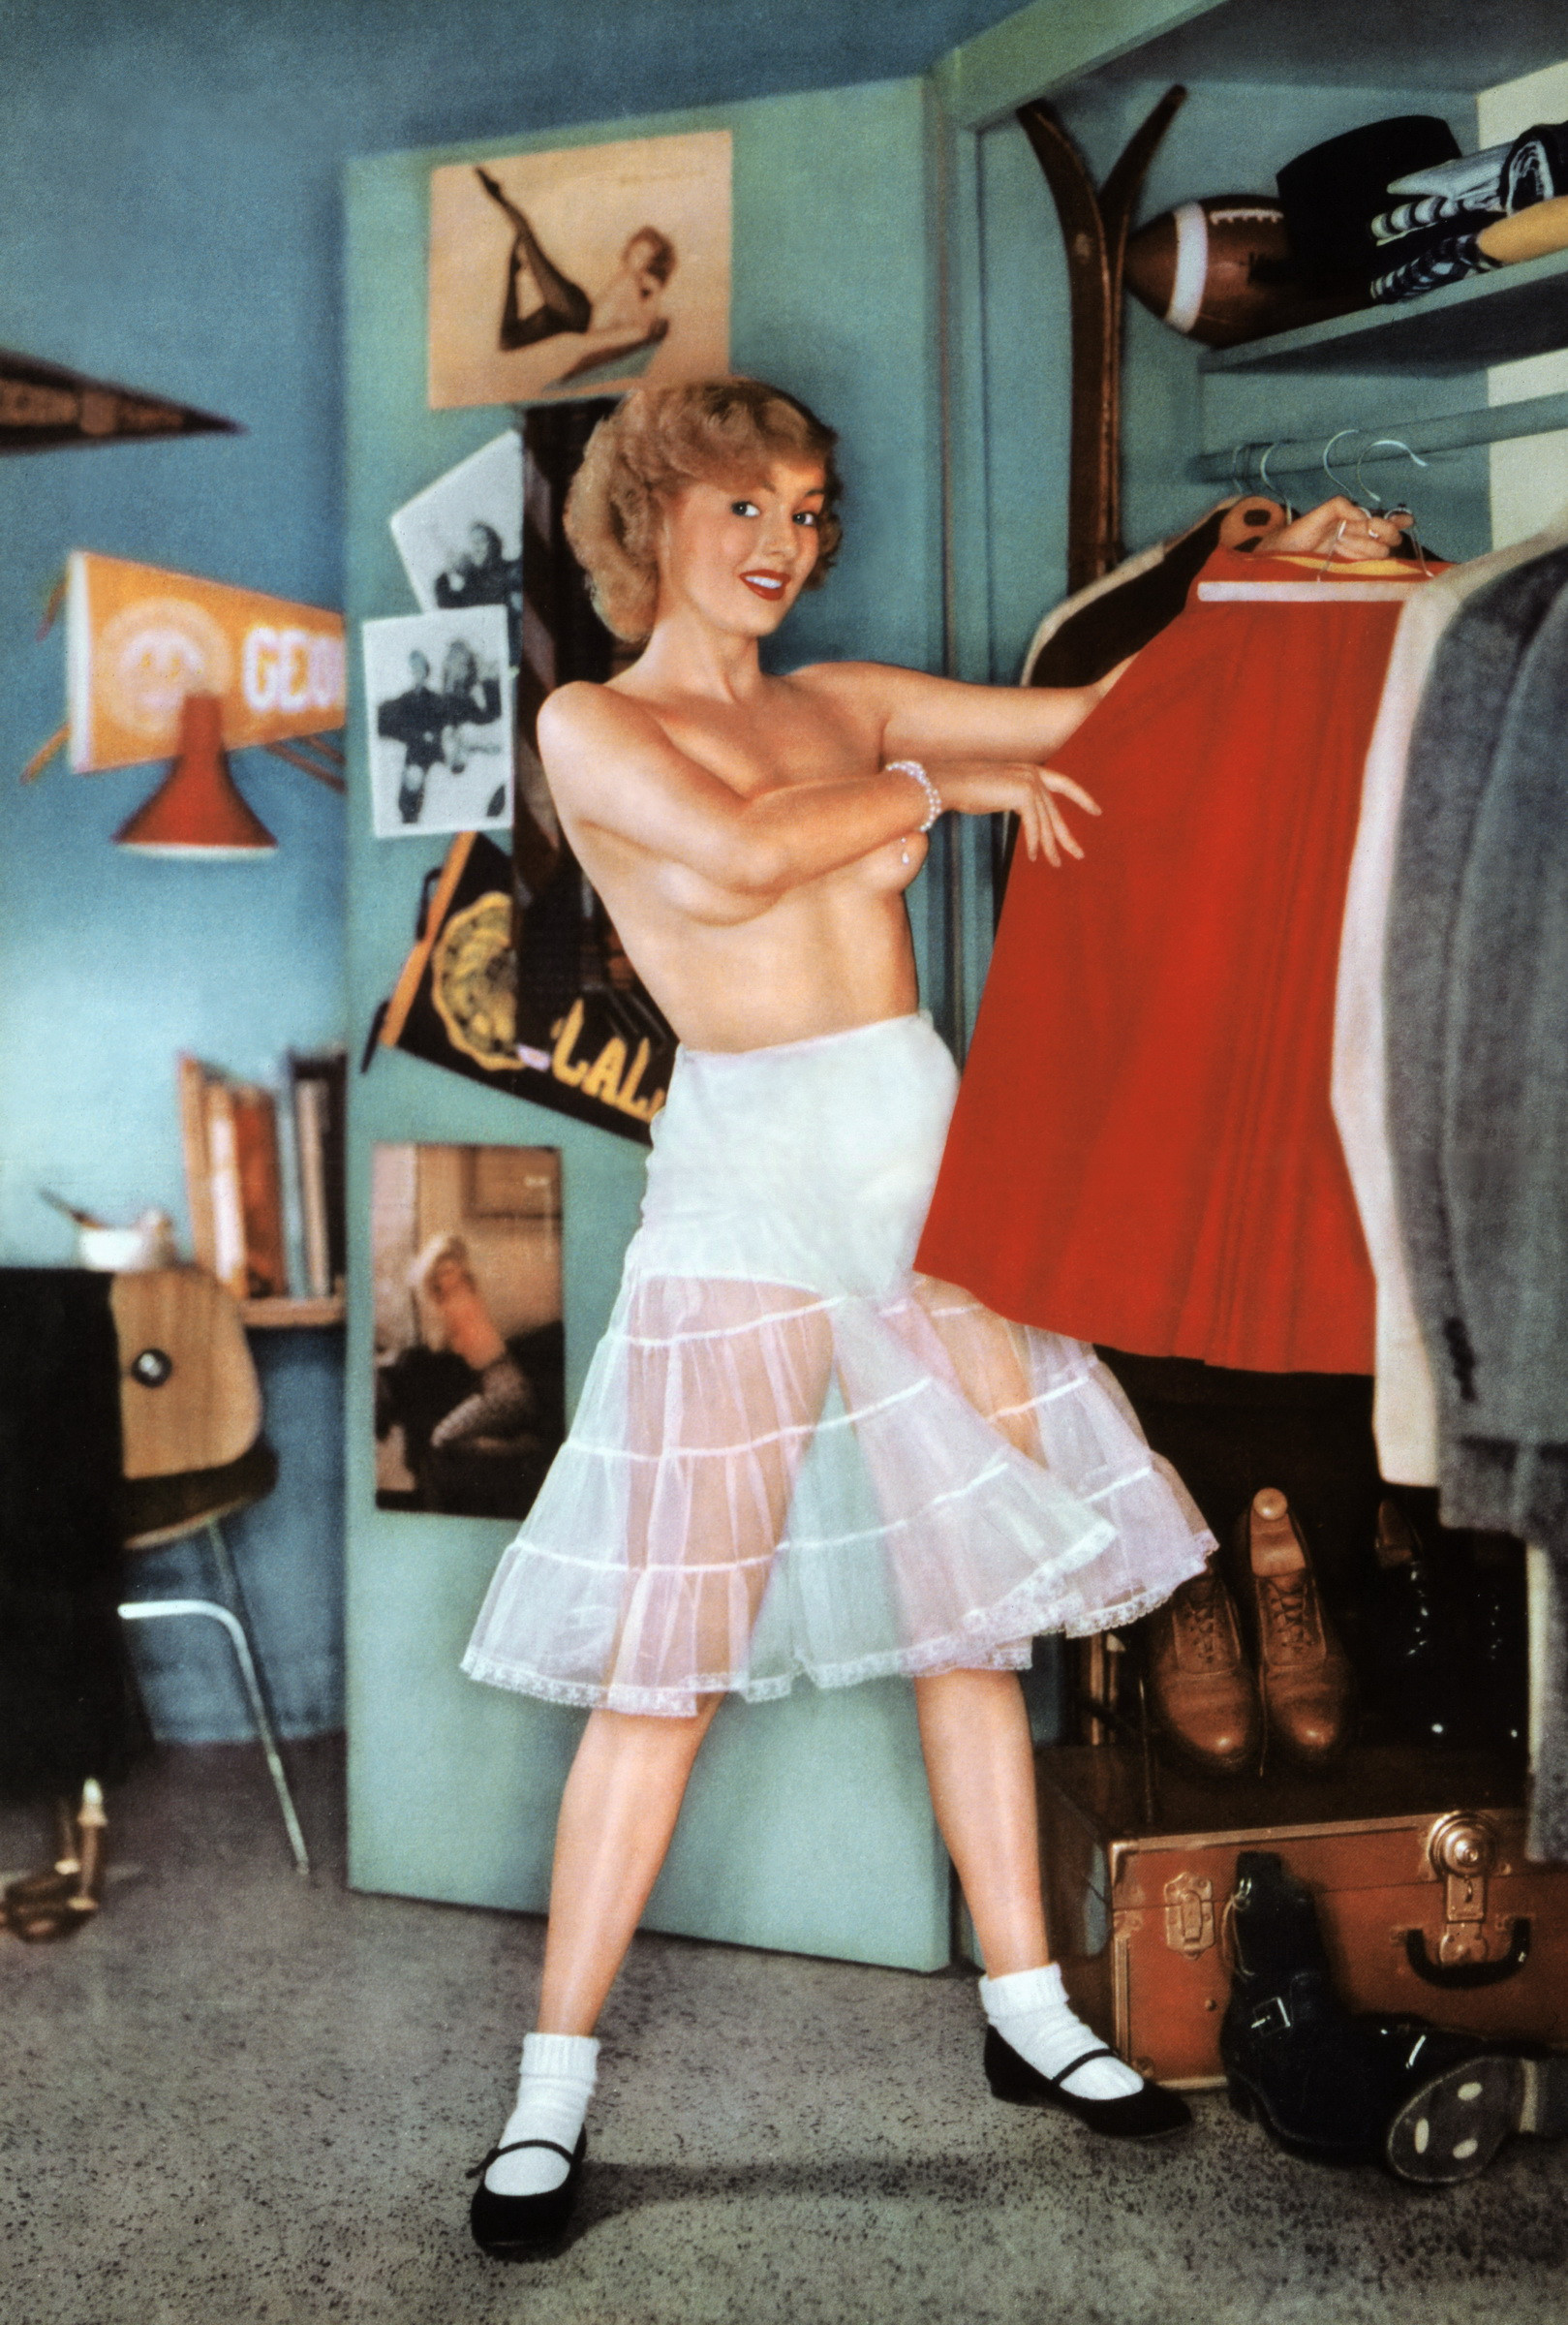 Jean Moorehead as Miss October in a 1955 issue of Playboy